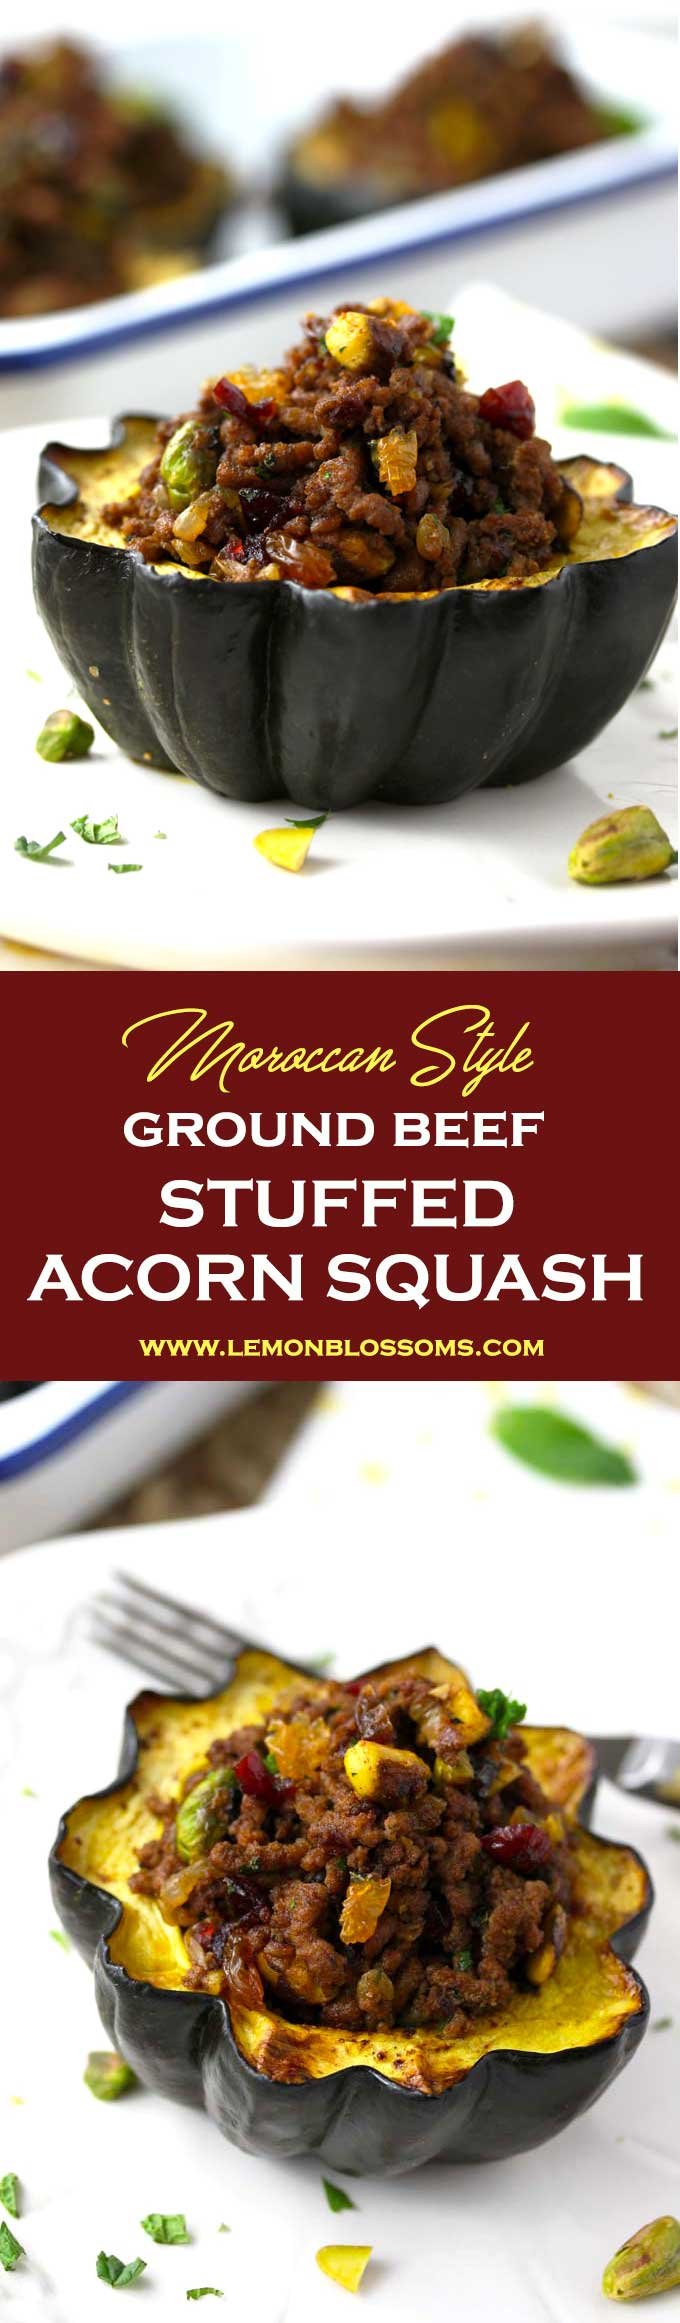 This delicious Stuffed Acorn Squash has a great balance of savory and sweet. Filled with ground beef seasoned with warm spices, dried cranberries, golden raisins, pistachios, parsley and mint. This is the perfect fall and winter dish! #squash @stuffedacornsquash #groundbeef #Moroccan #holidaymeal #fall